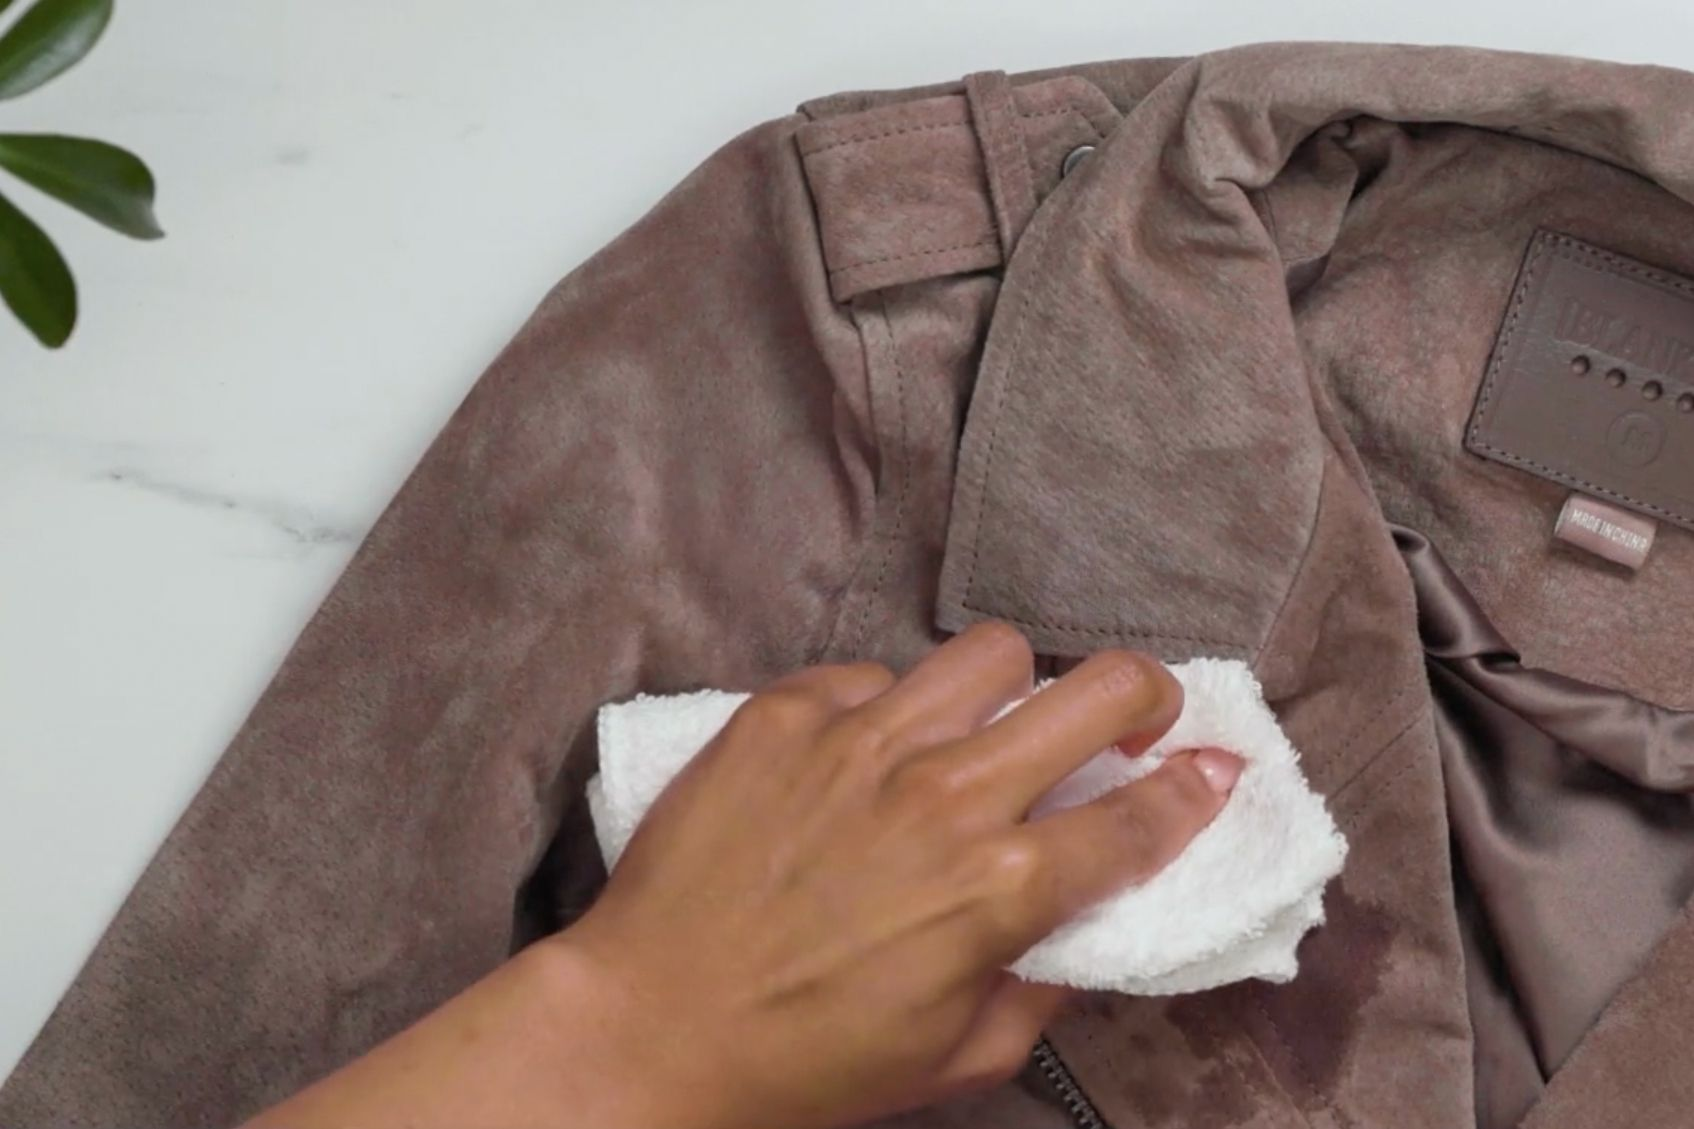 Using a white cloth to brush the suede